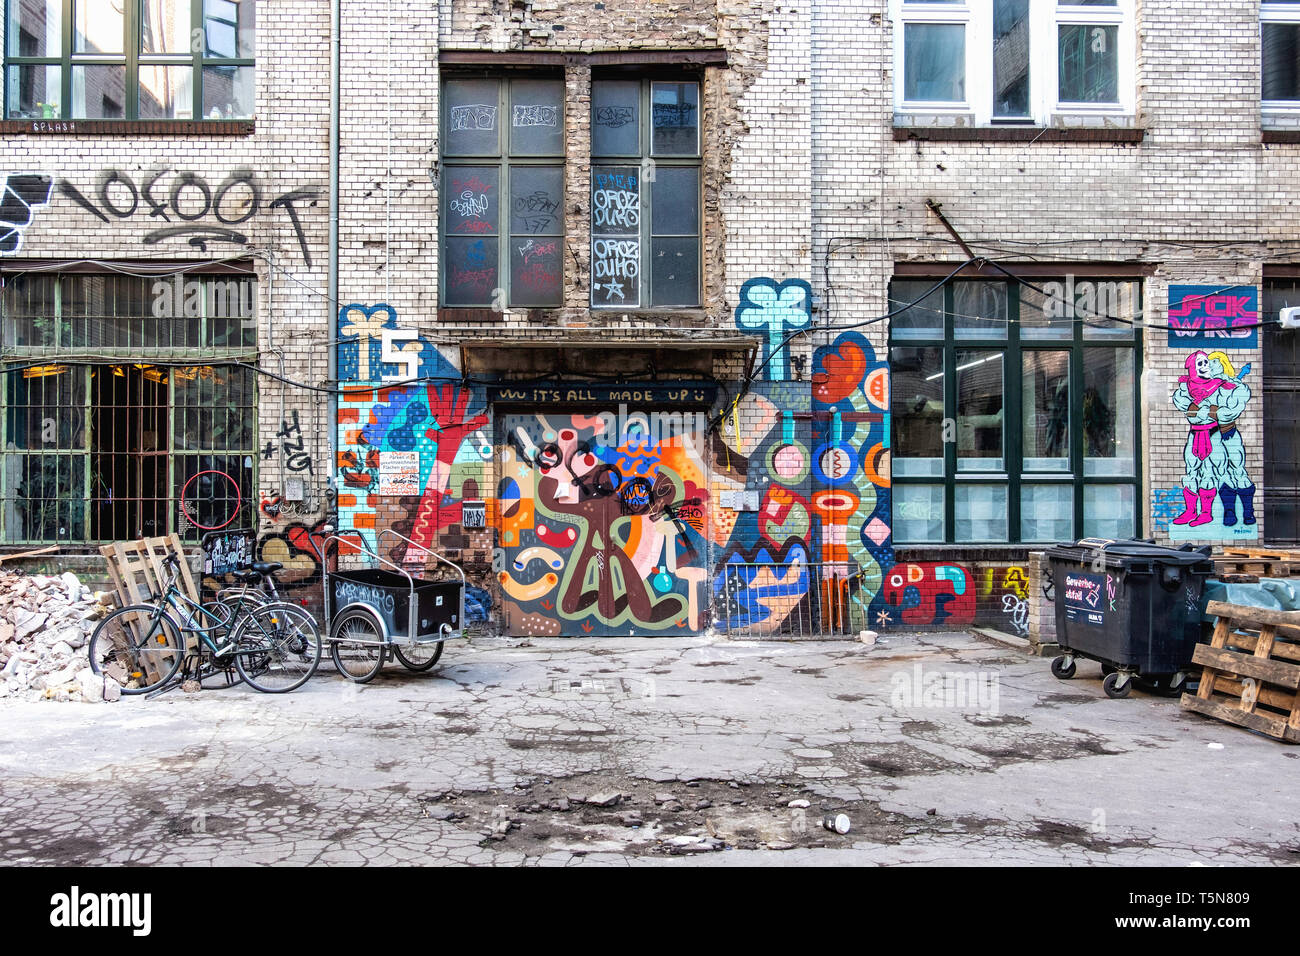 Wedding, Berlin. Inner courtyard of dilapidated old industrial building next to Panke river at Gerichtstrasse 23. Residential & business use. - Stock Image